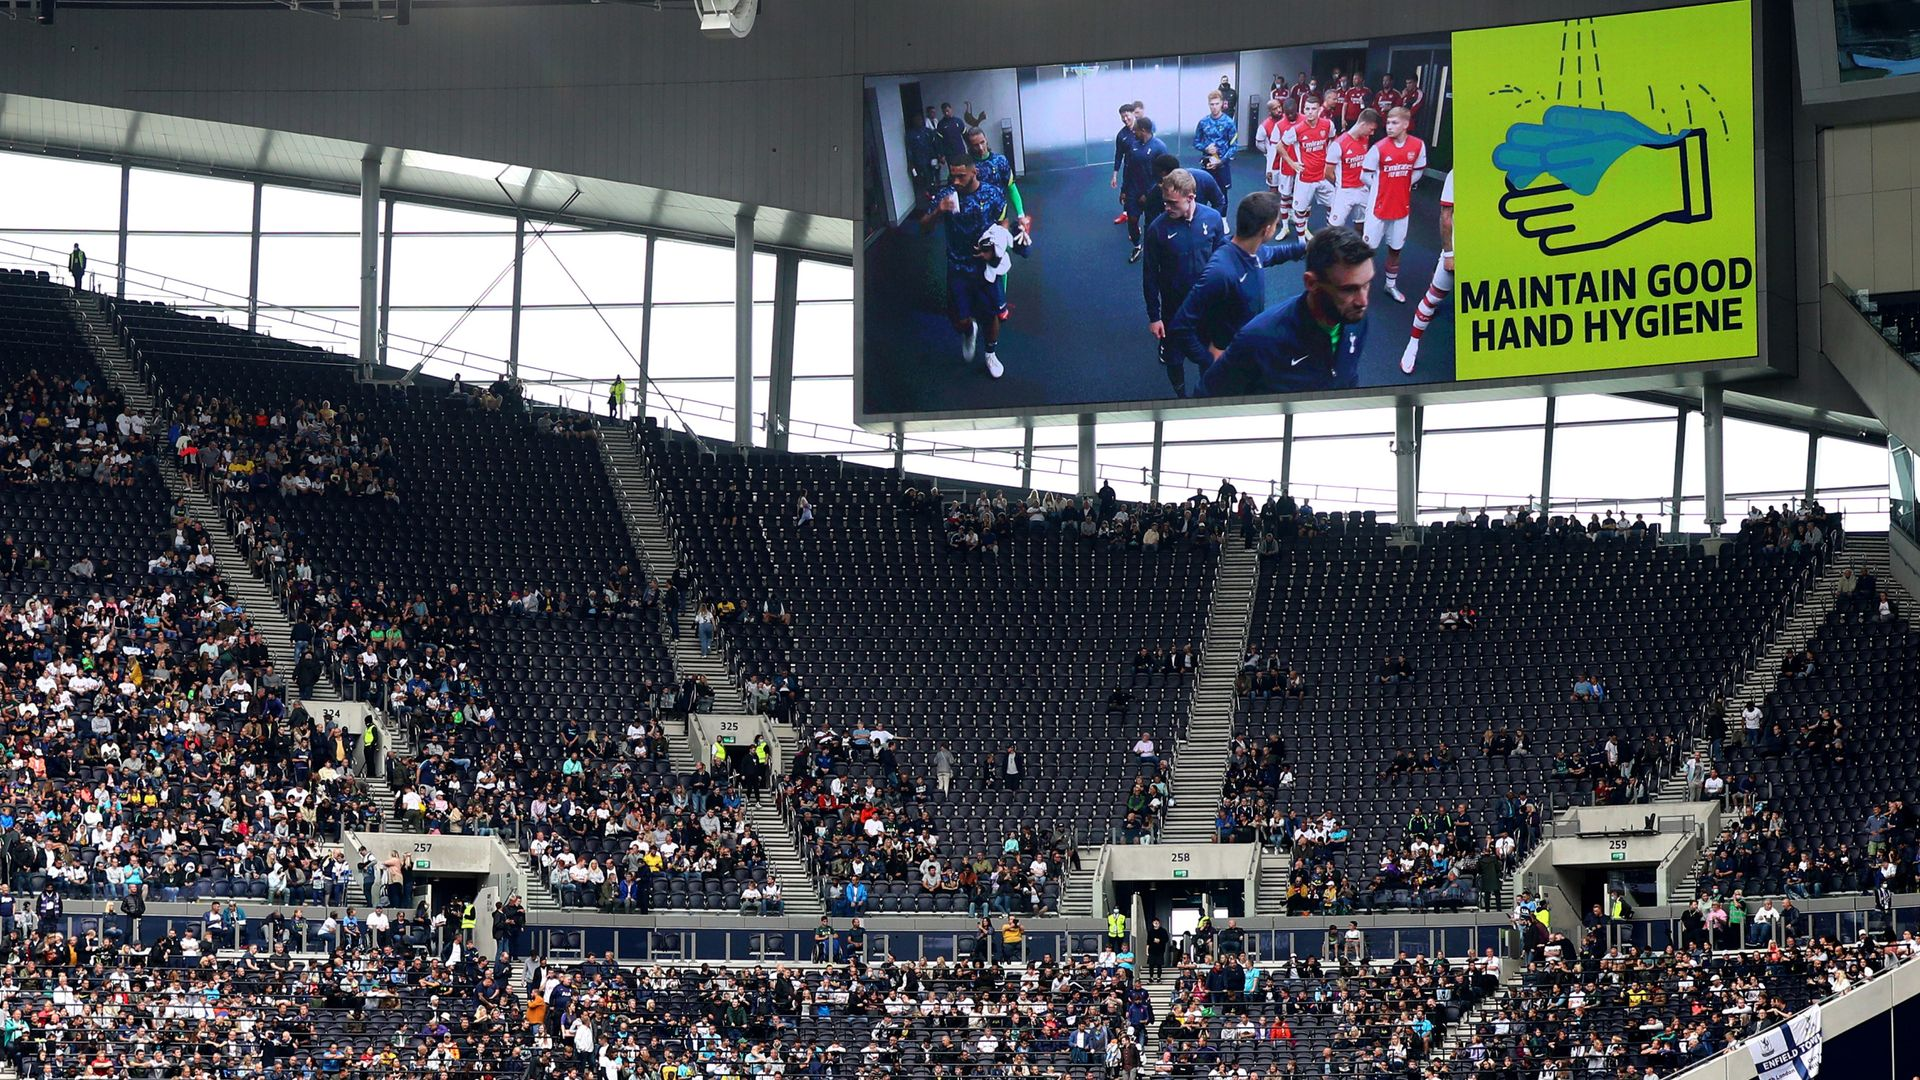 PL confirms fans to be subject to random Covid spot-checks